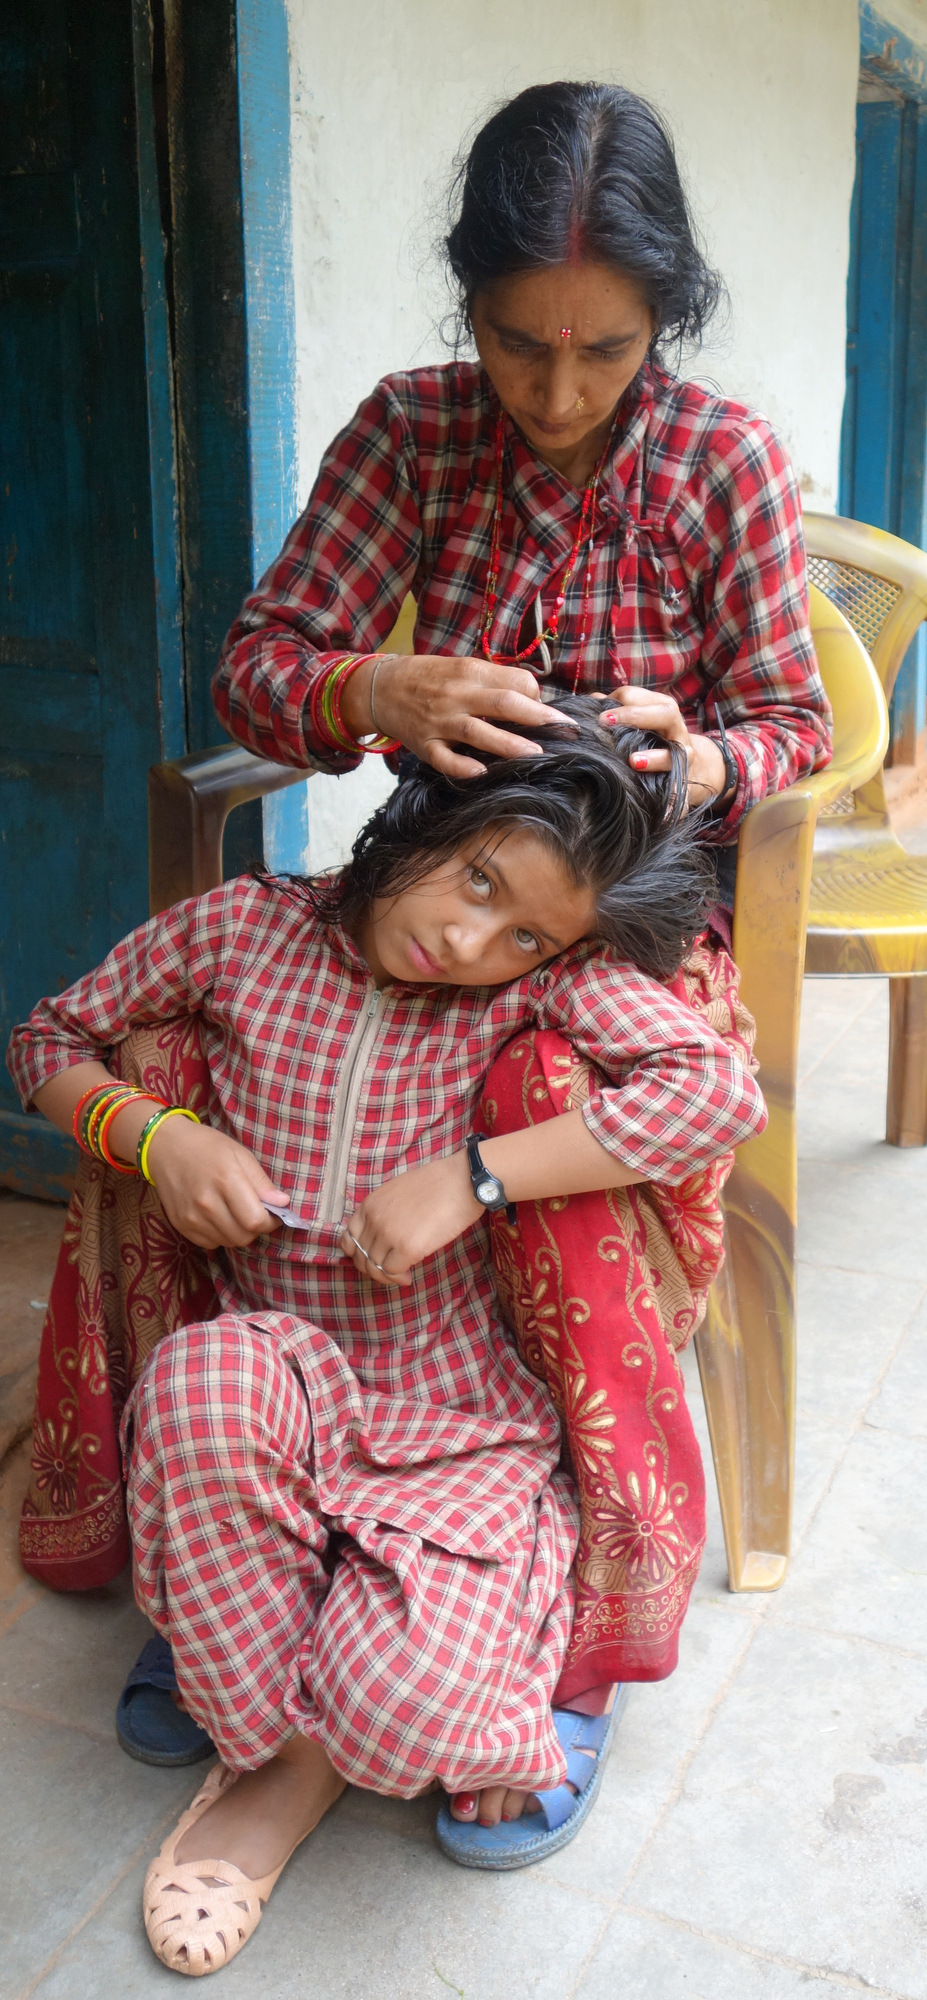 In Chandanpur village, a grandma looks for lice in her granddaughter's hair.